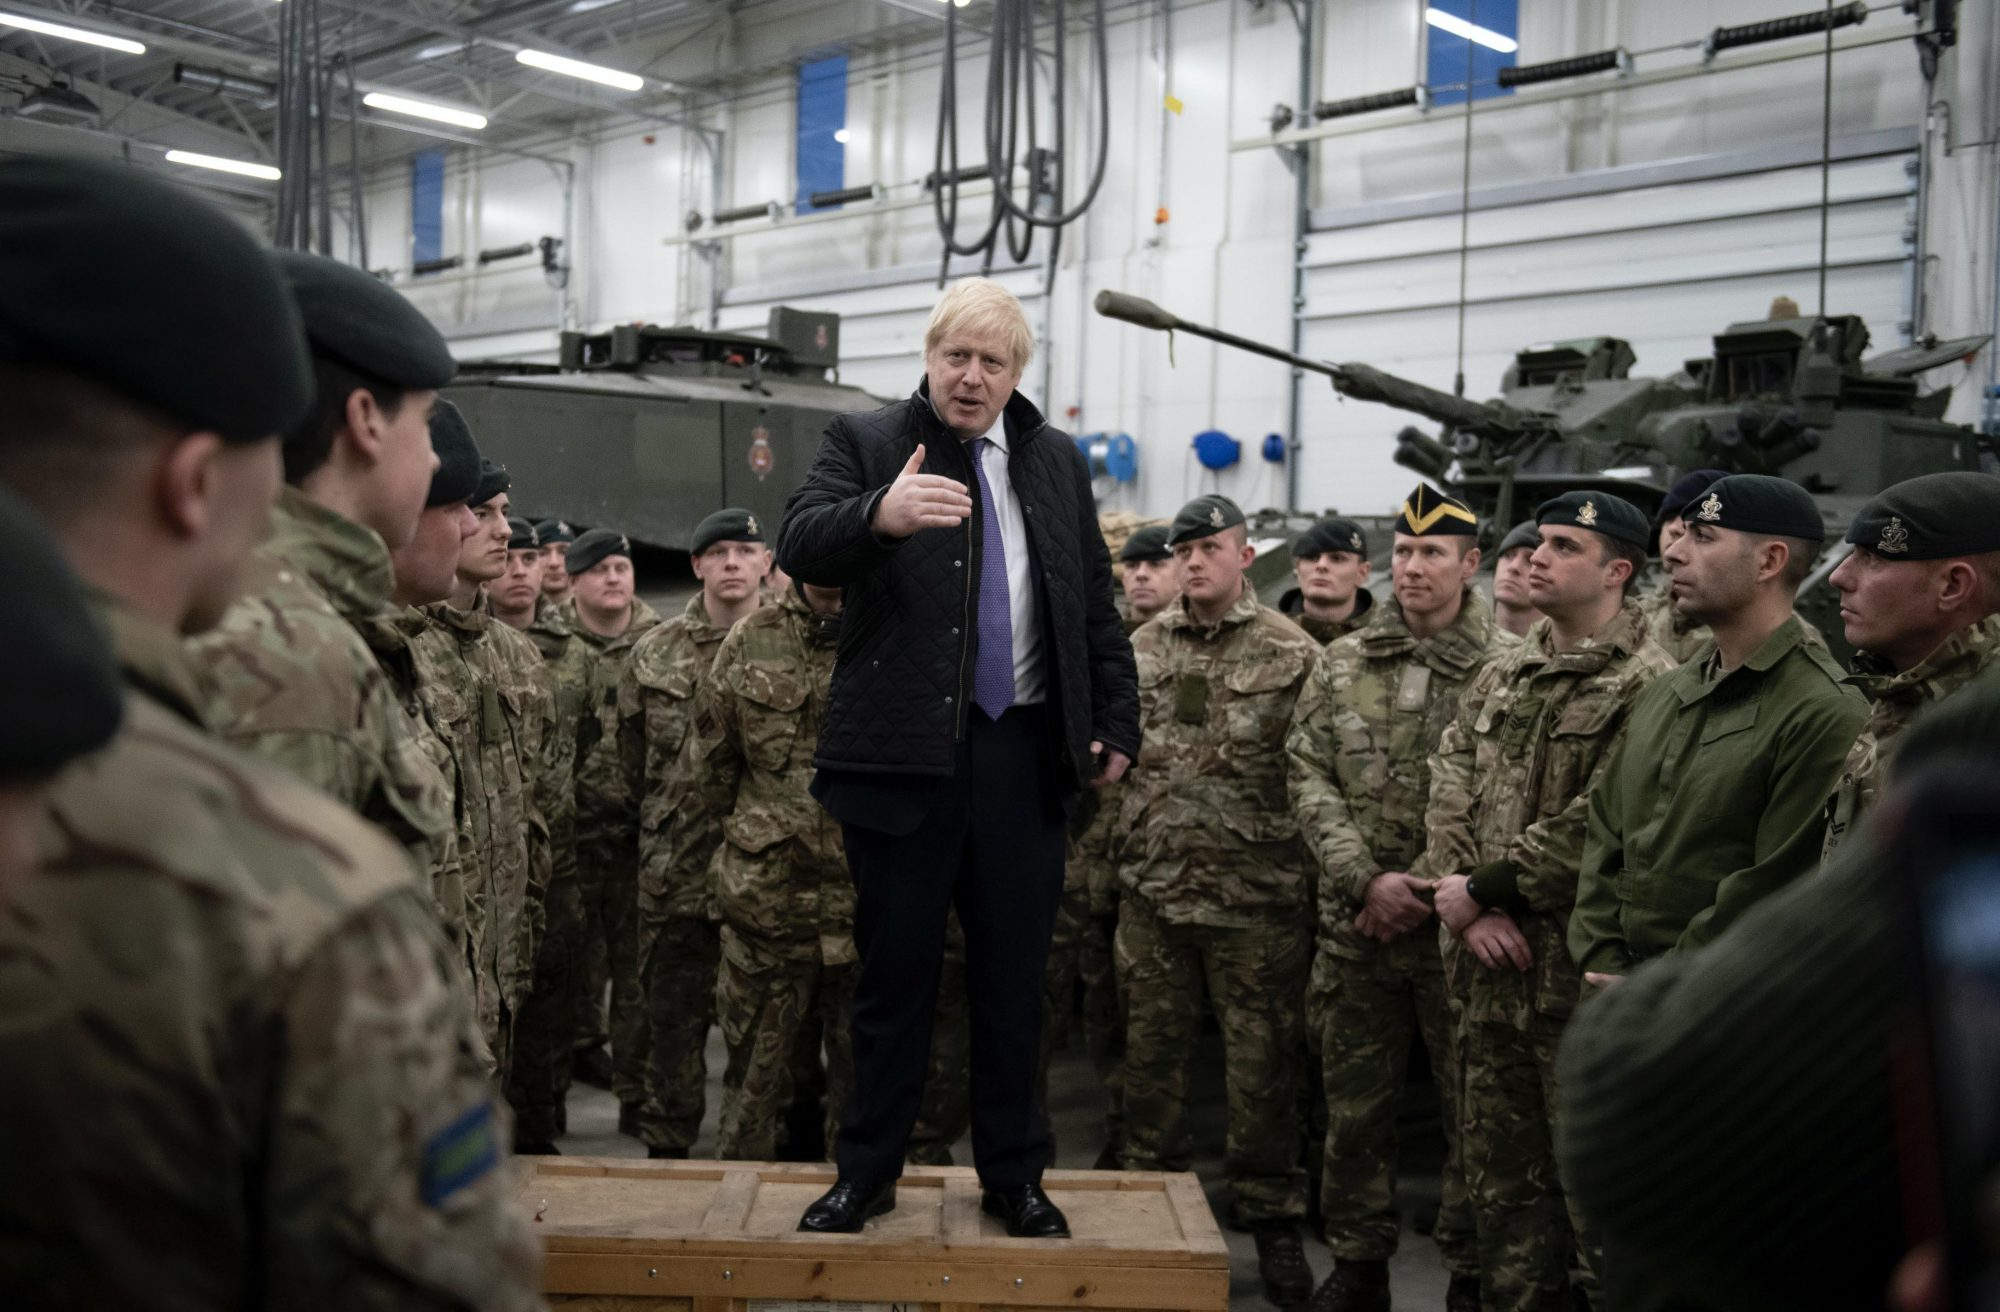 MOD 2000x1312 - Johnson insists Britain is 'absolutely' committed to NATO – Channel 4 News